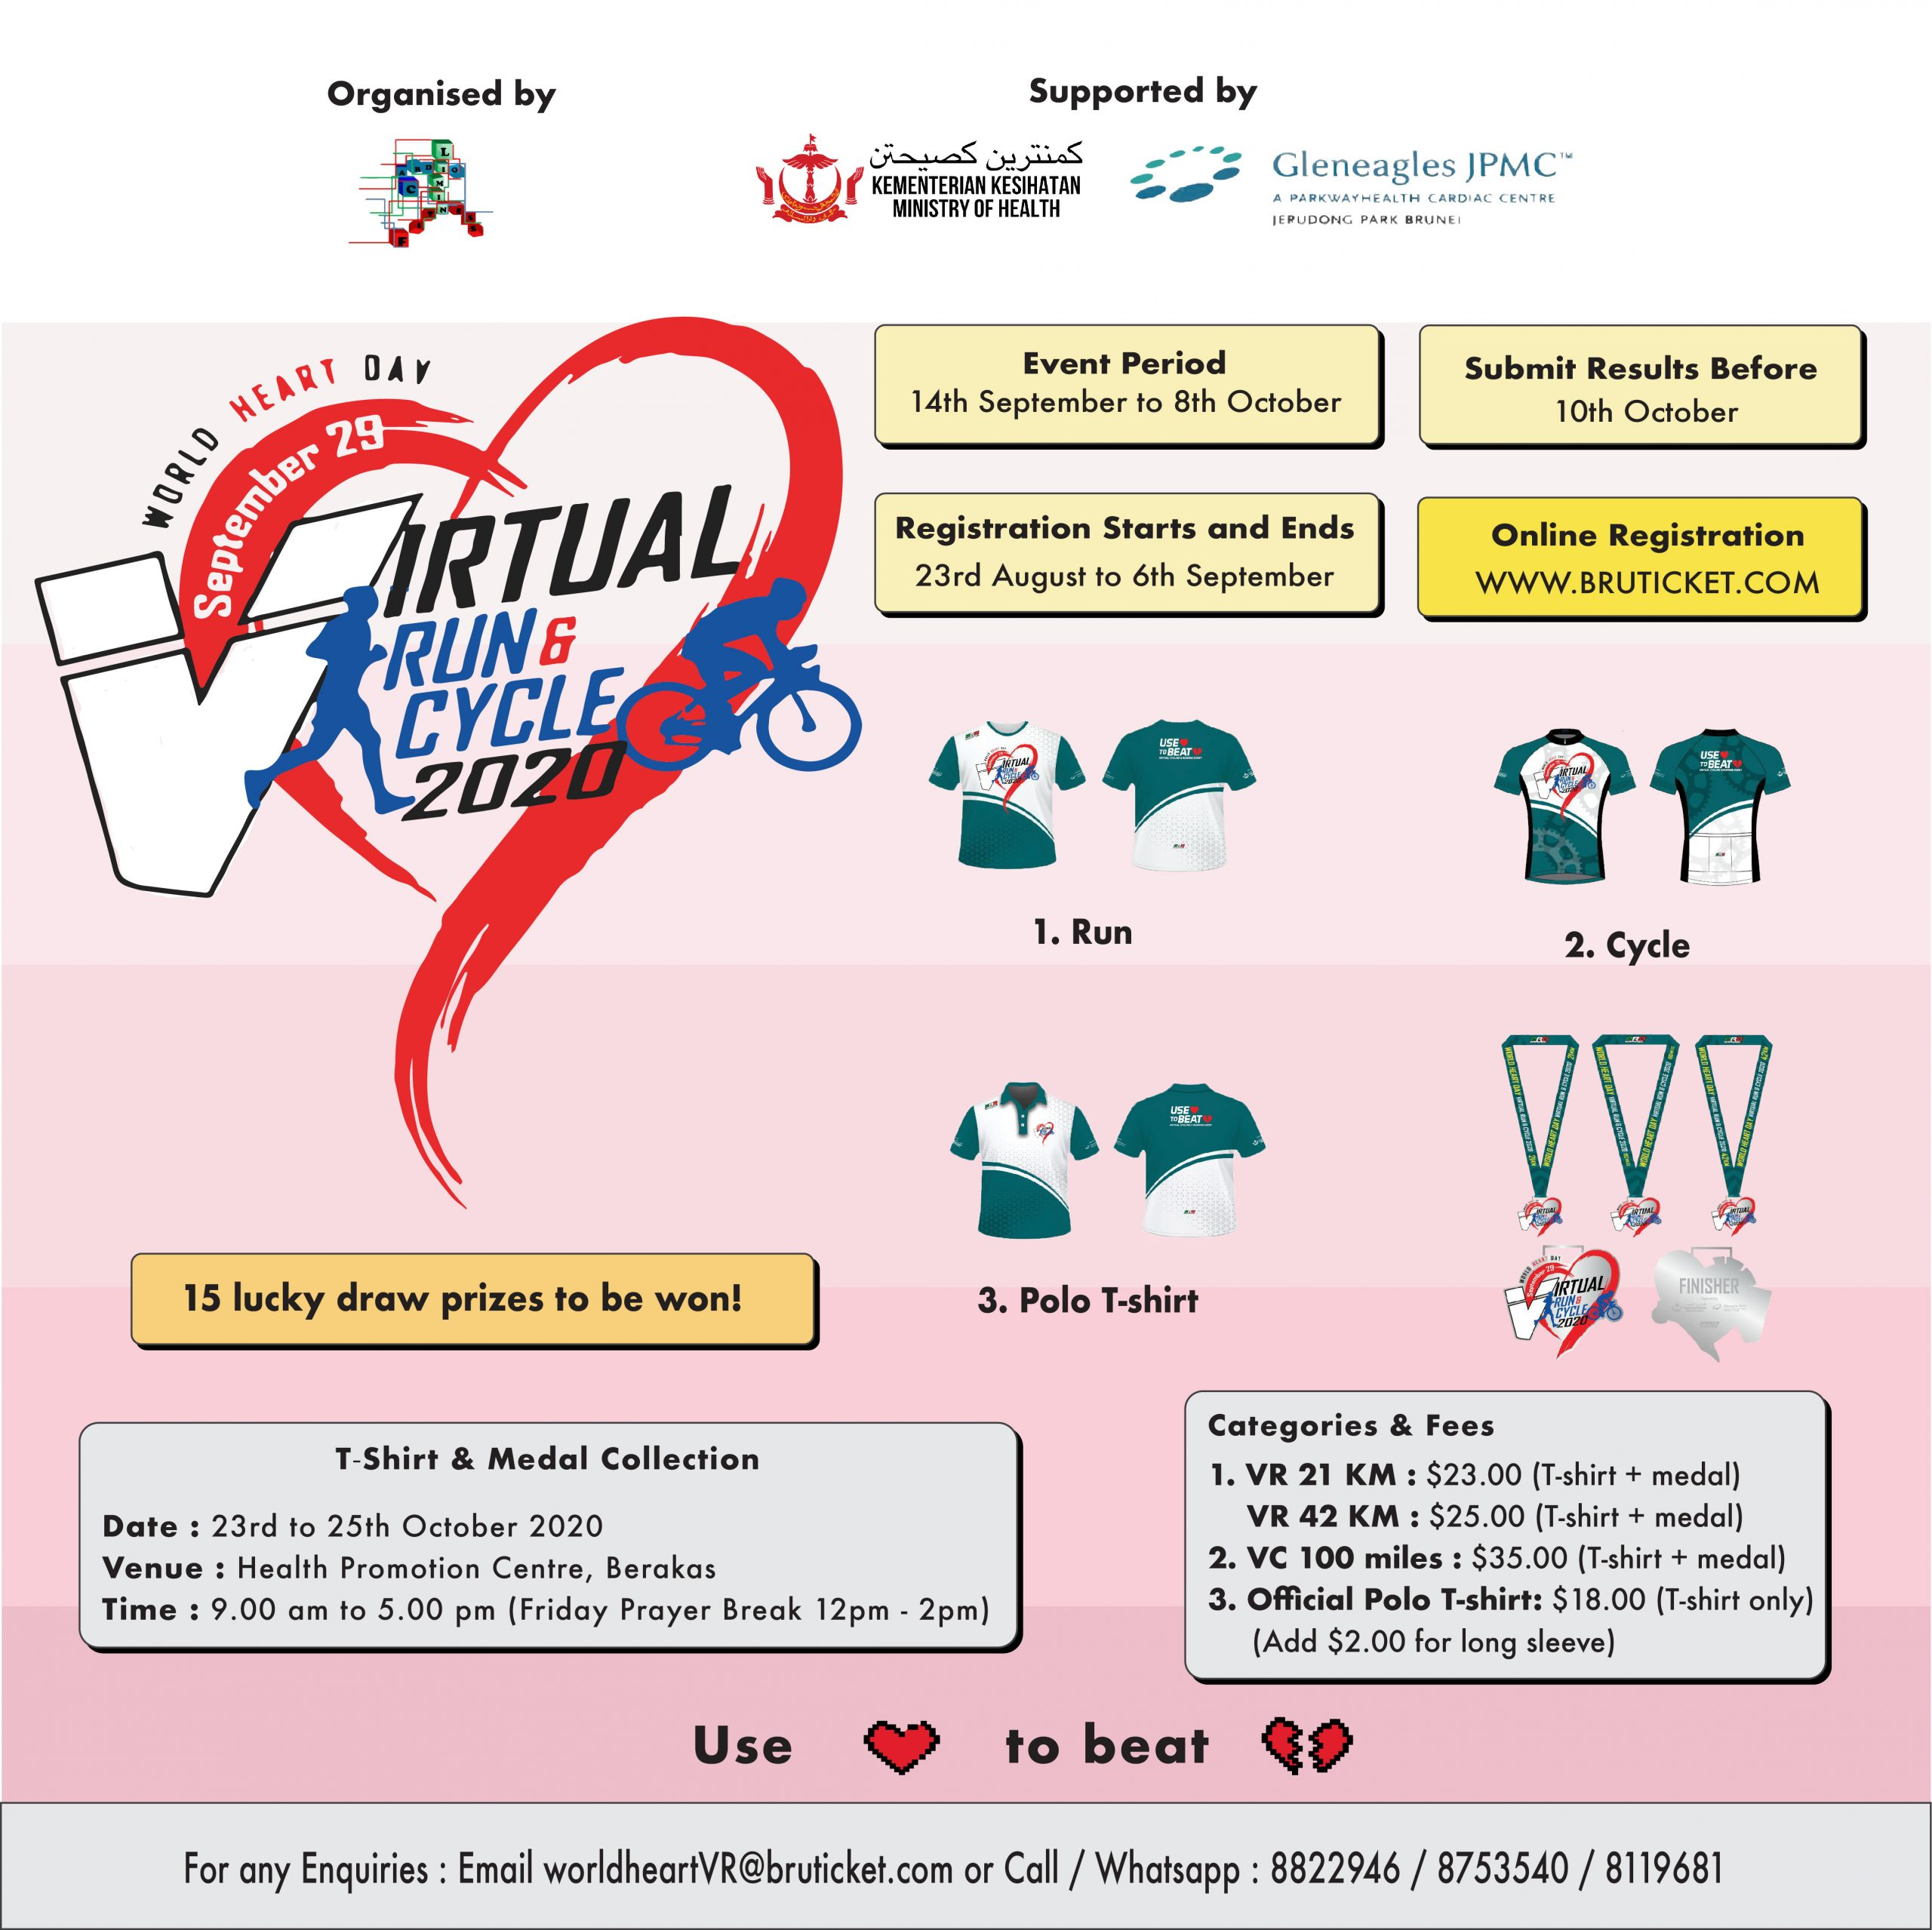 World heart day Virtual Run and Cycle 2020